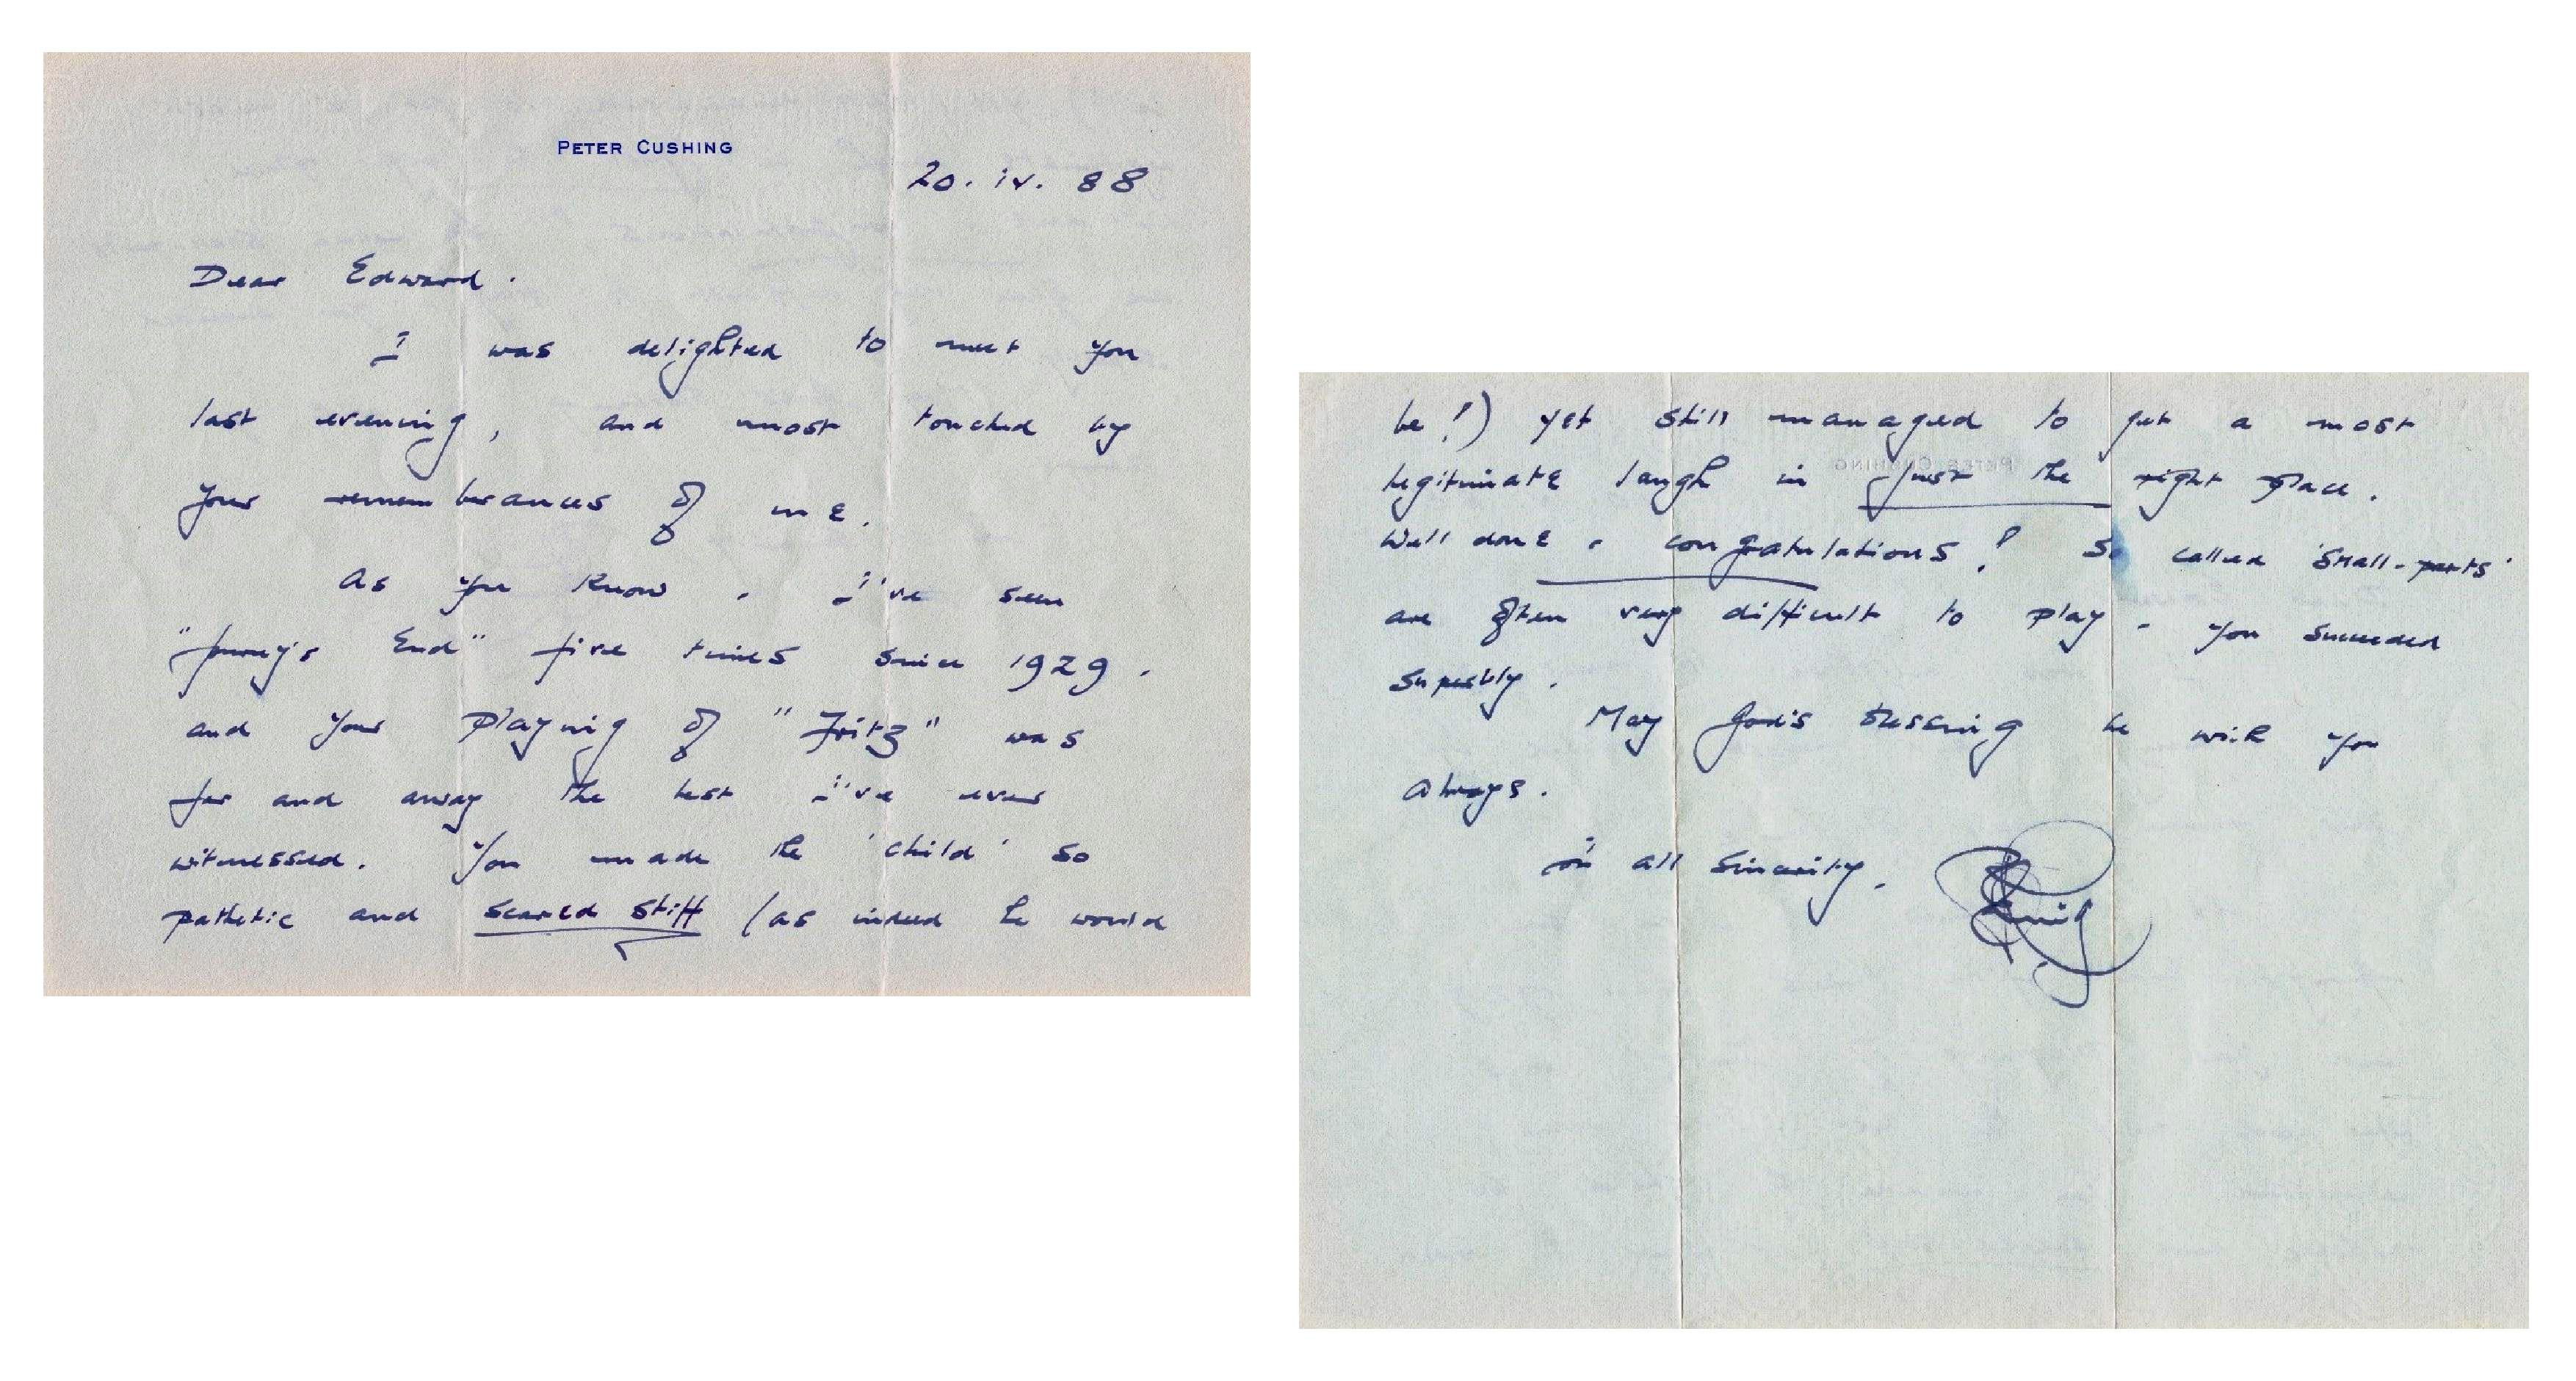 Letter from Peter Cushing